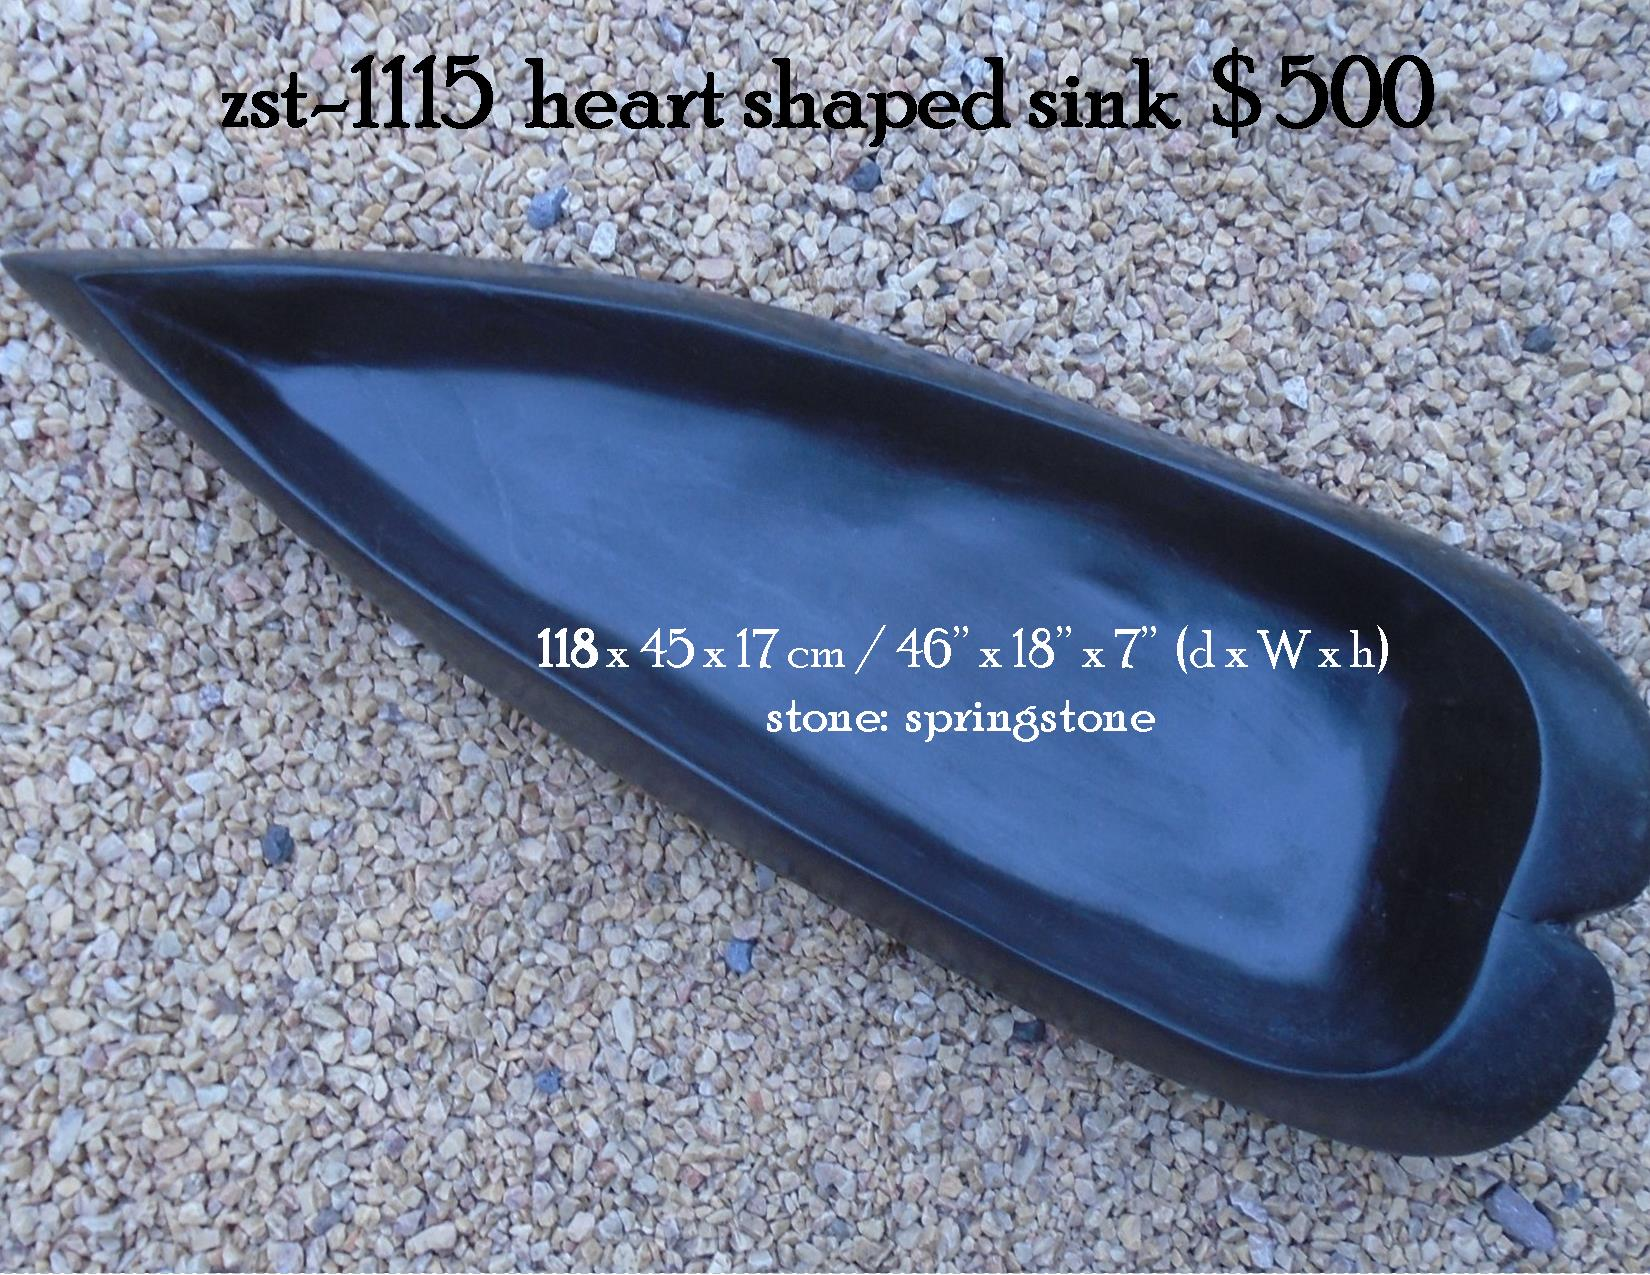 zst-1115  heart shaped sink